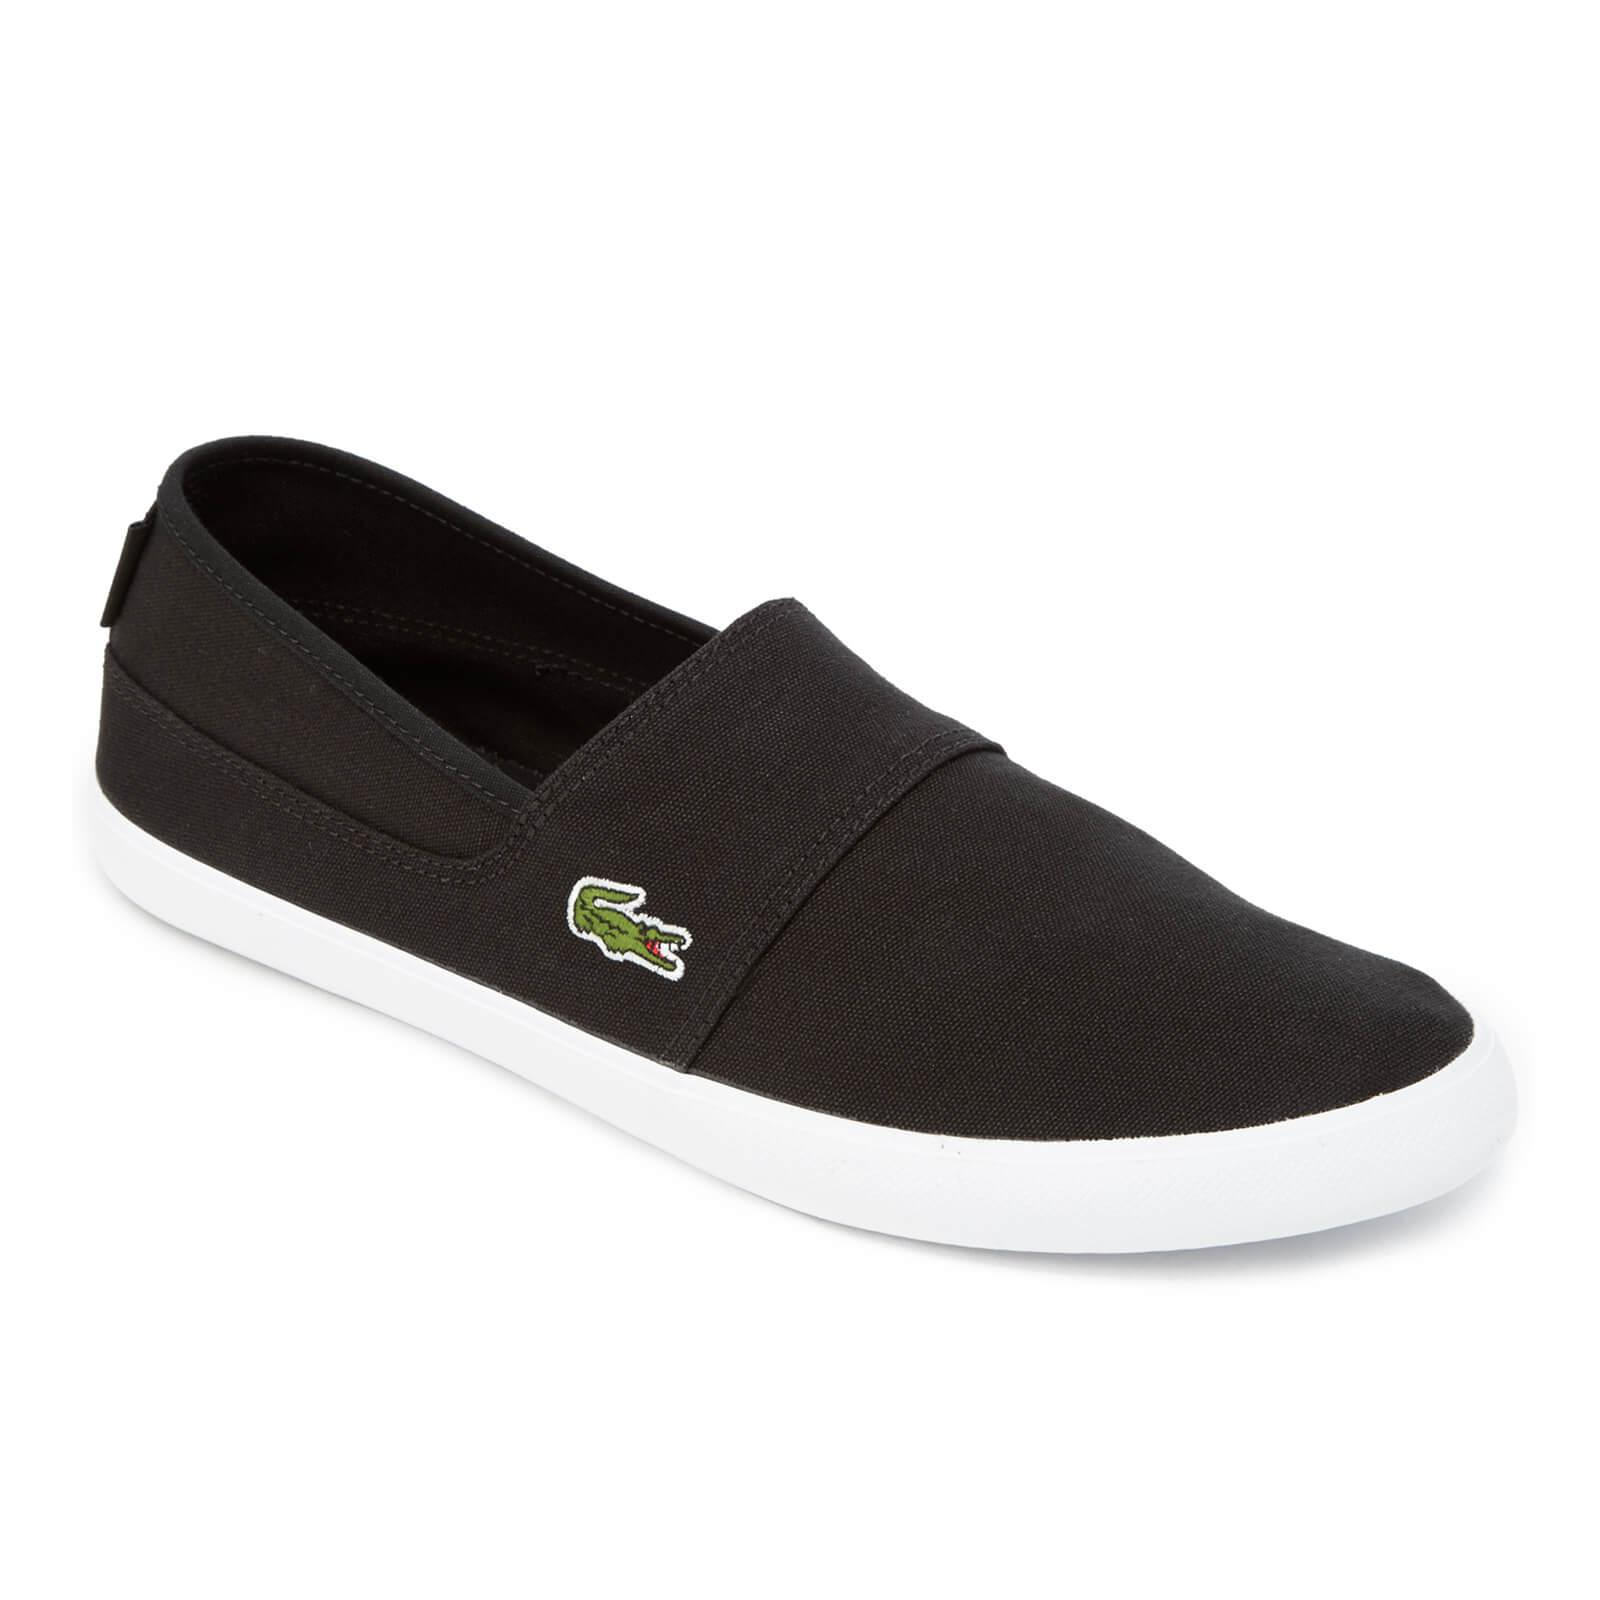 b93ec548c33d Lacoste - Black Marice Canvas Slip-on Pumps for Men - Lyst. View fullscreen